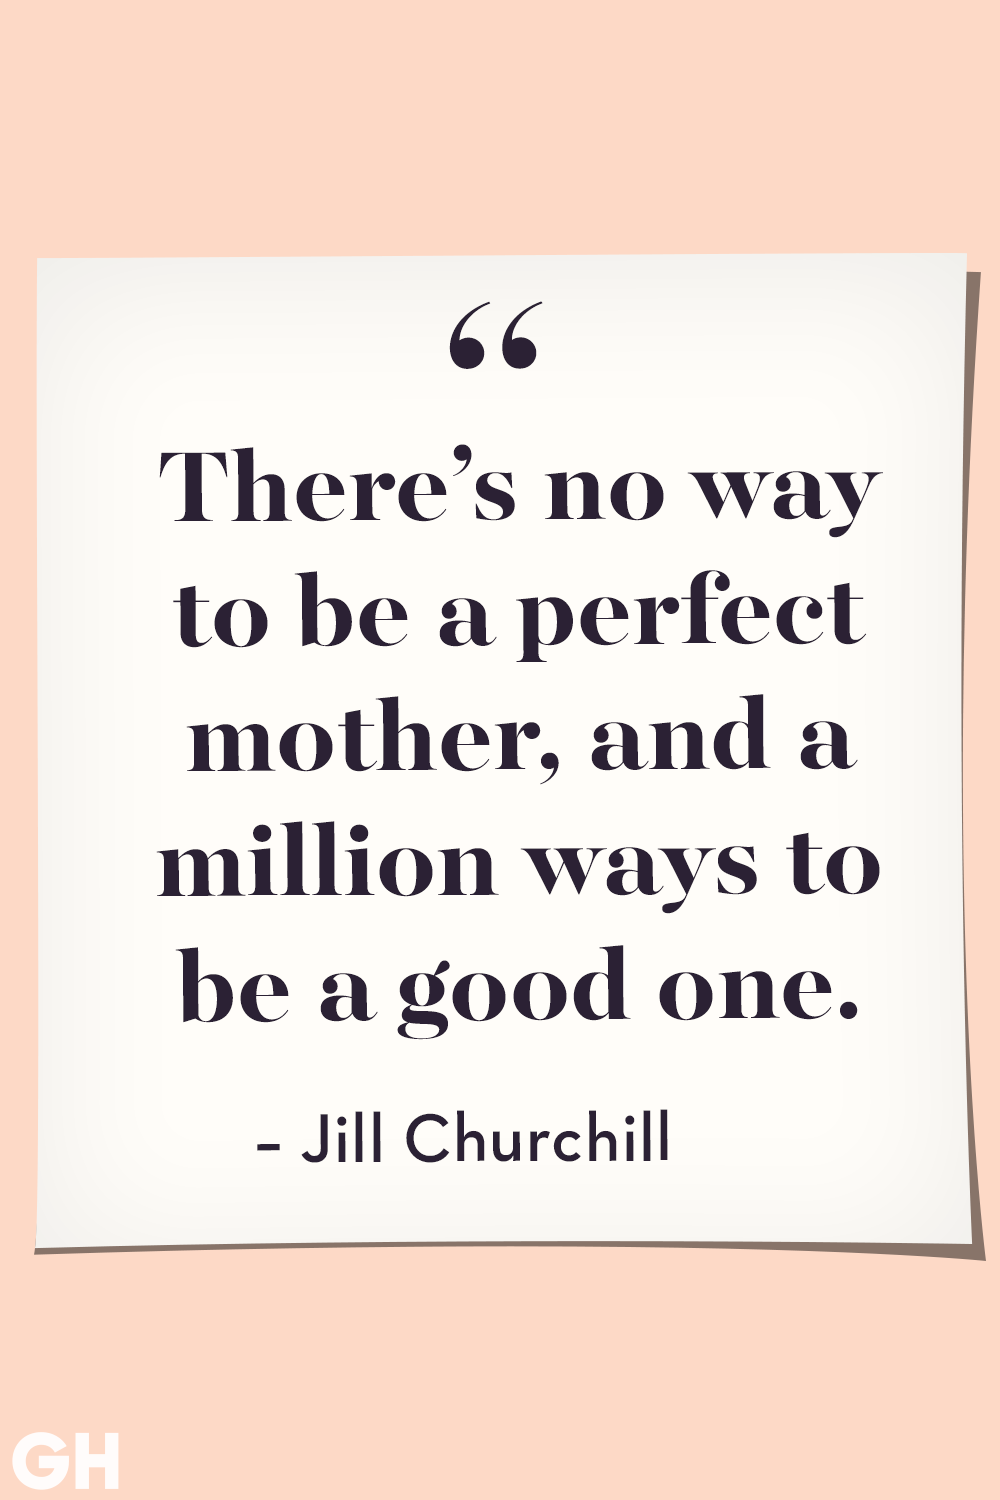 30 Best Mother's Day Quotes - Heartfelt Mom Sayings and